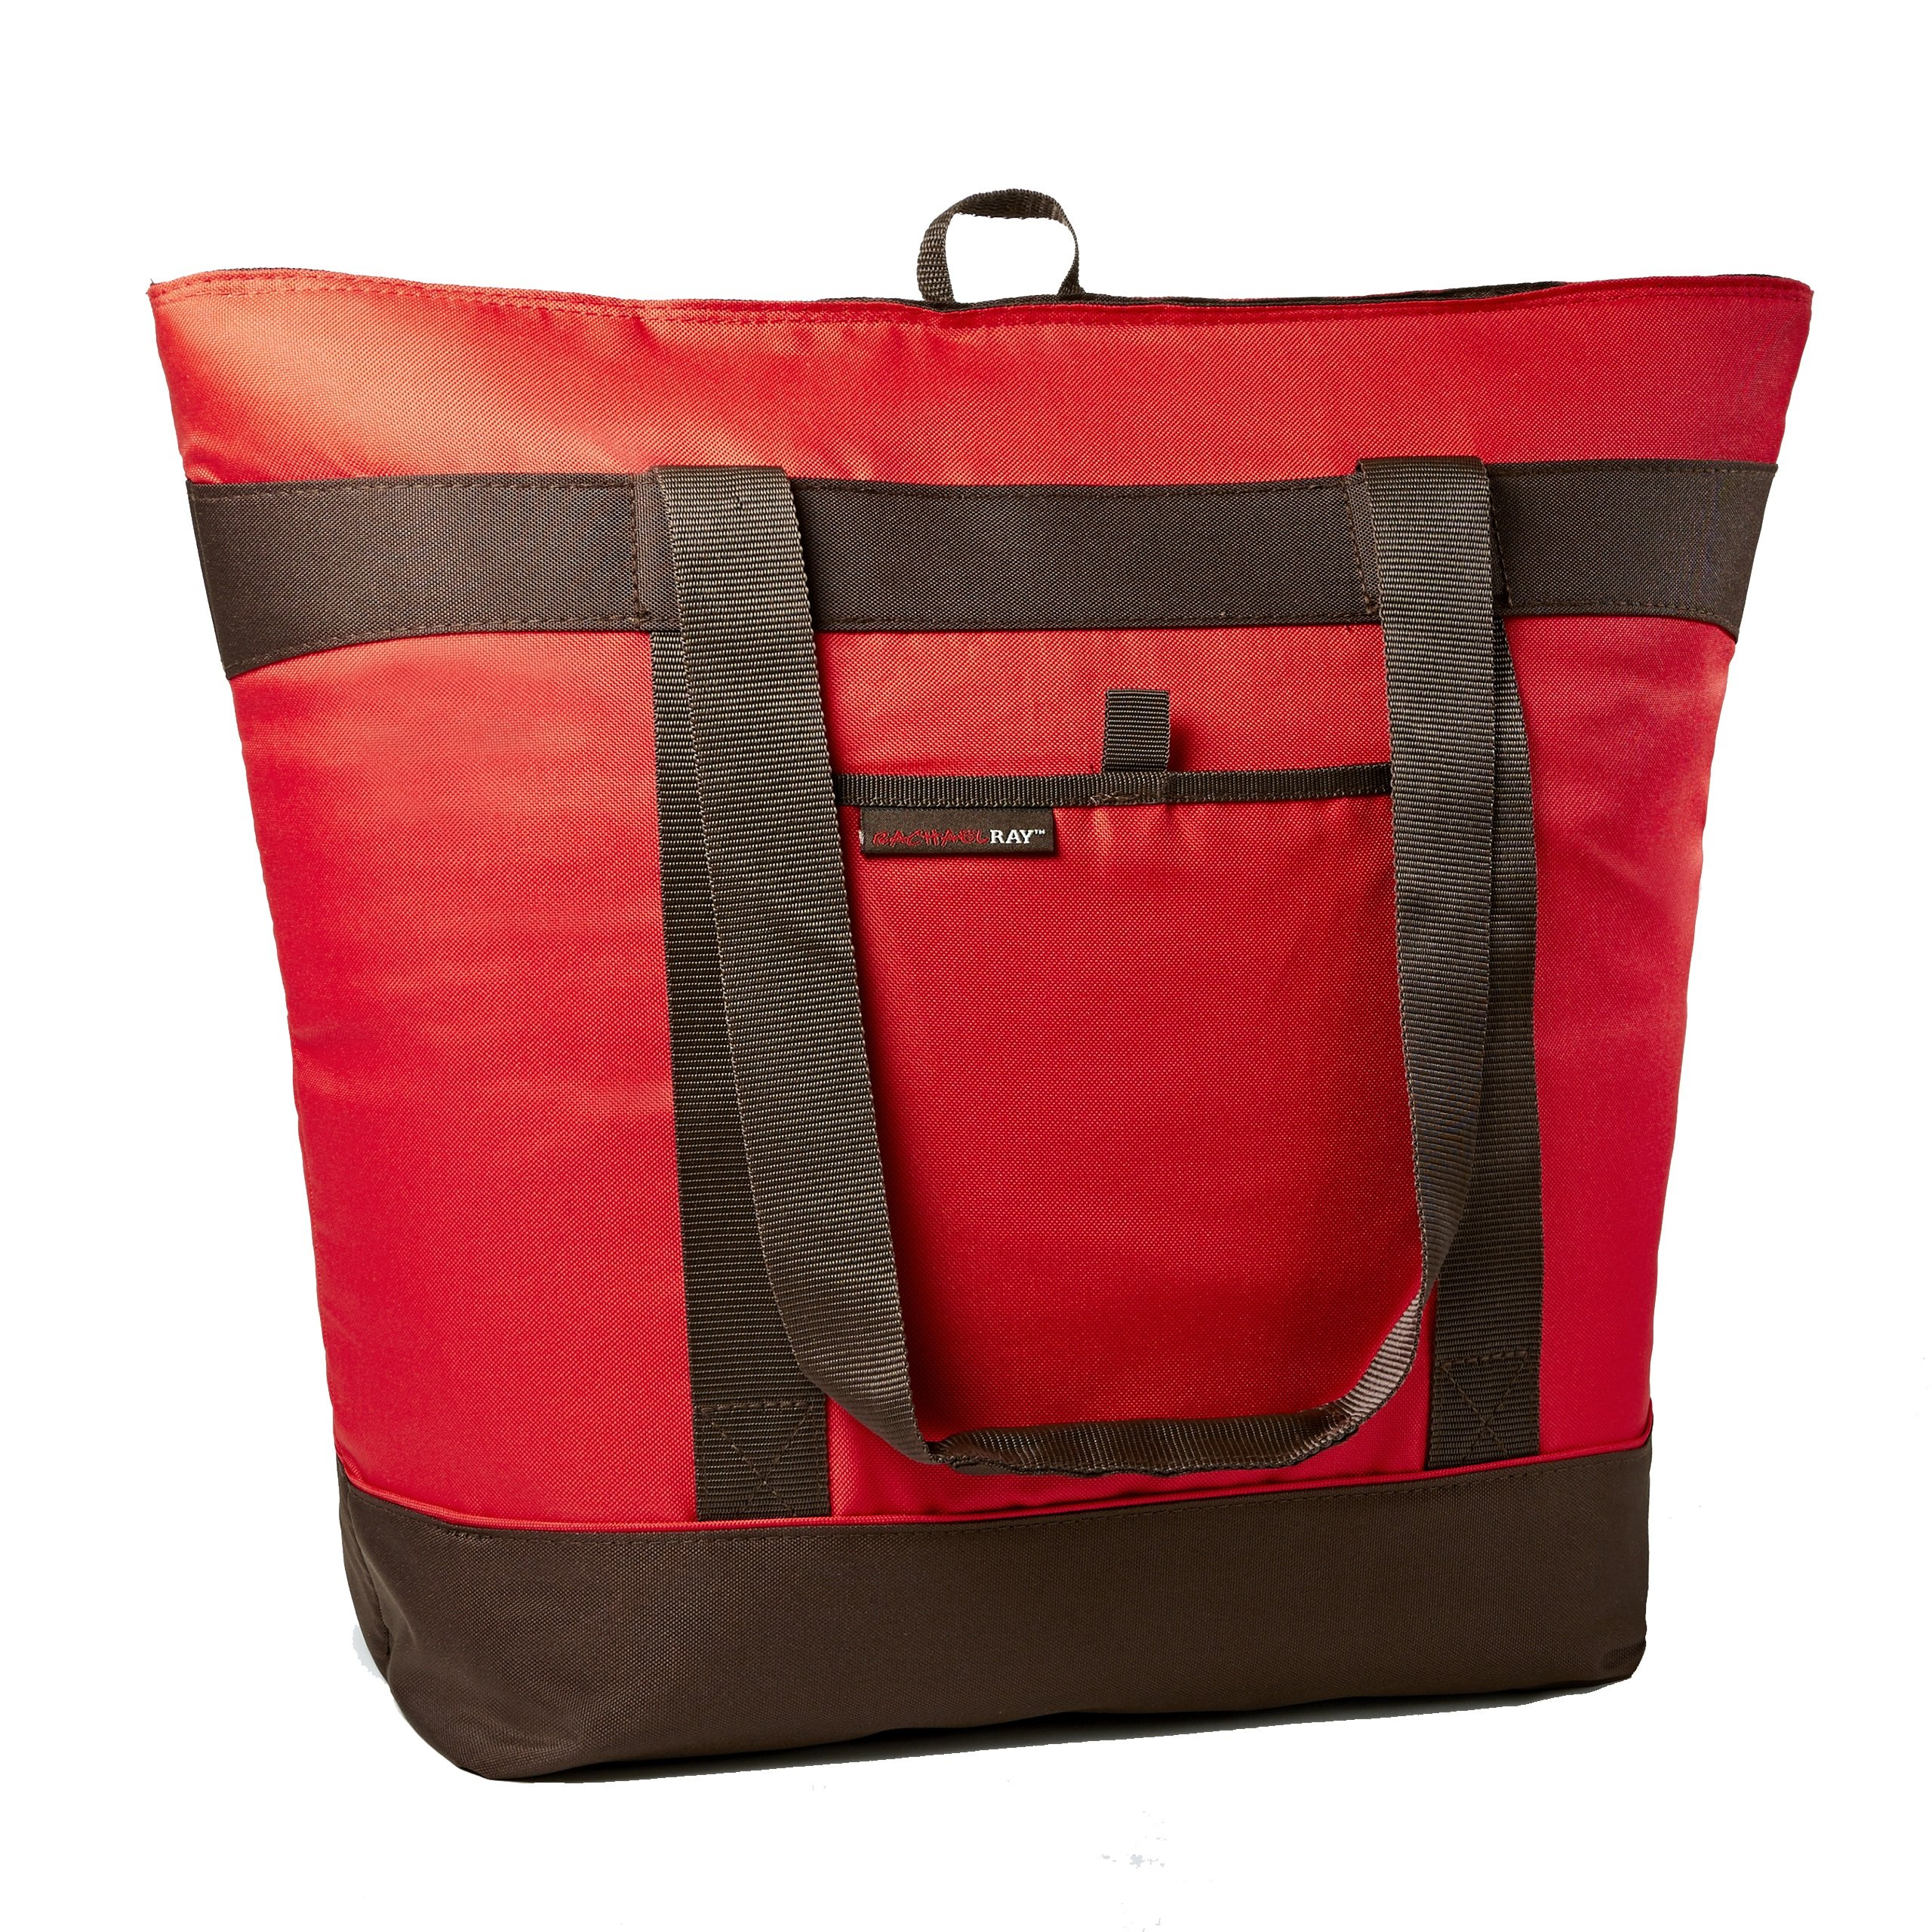 Rachael Ray Jumbo ChillOut Thermal Tote, XL Insulated Bag for Grocery Shopping/Entertaining, Transport Hot and Cold Food, Red